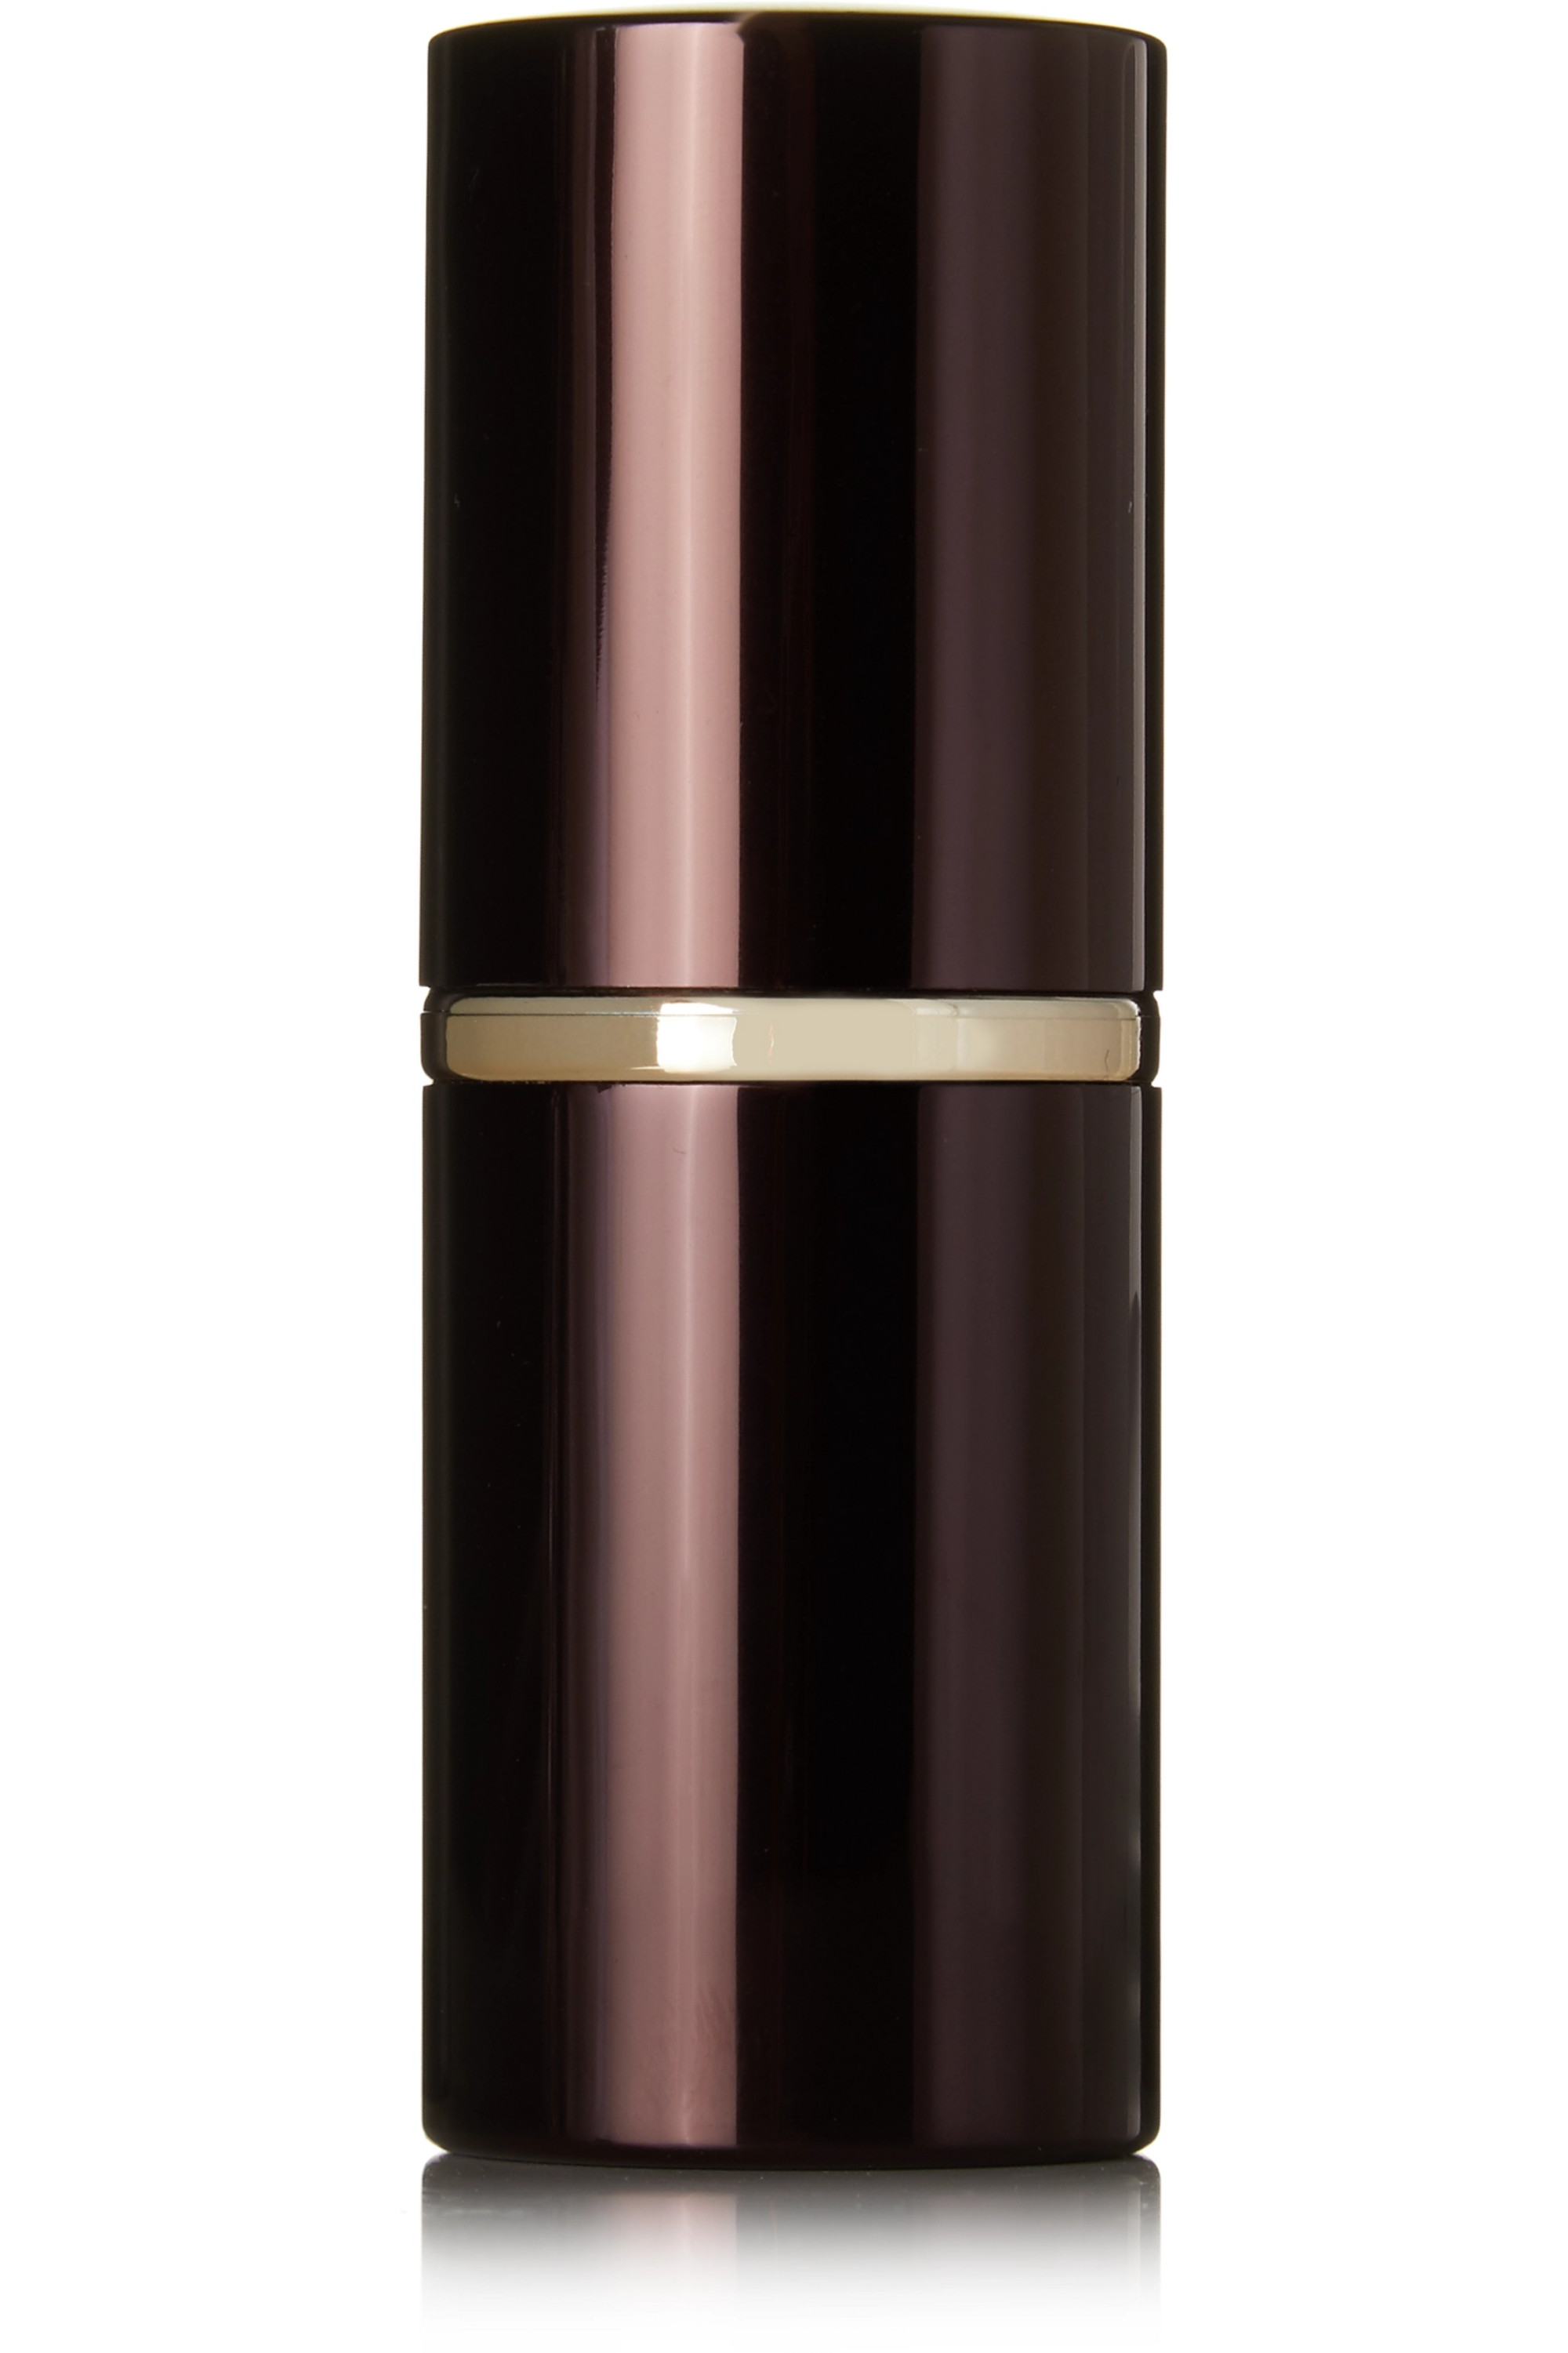 TOM FORD BEAUTY Fond de teint stick Invisible, Dune 5.7